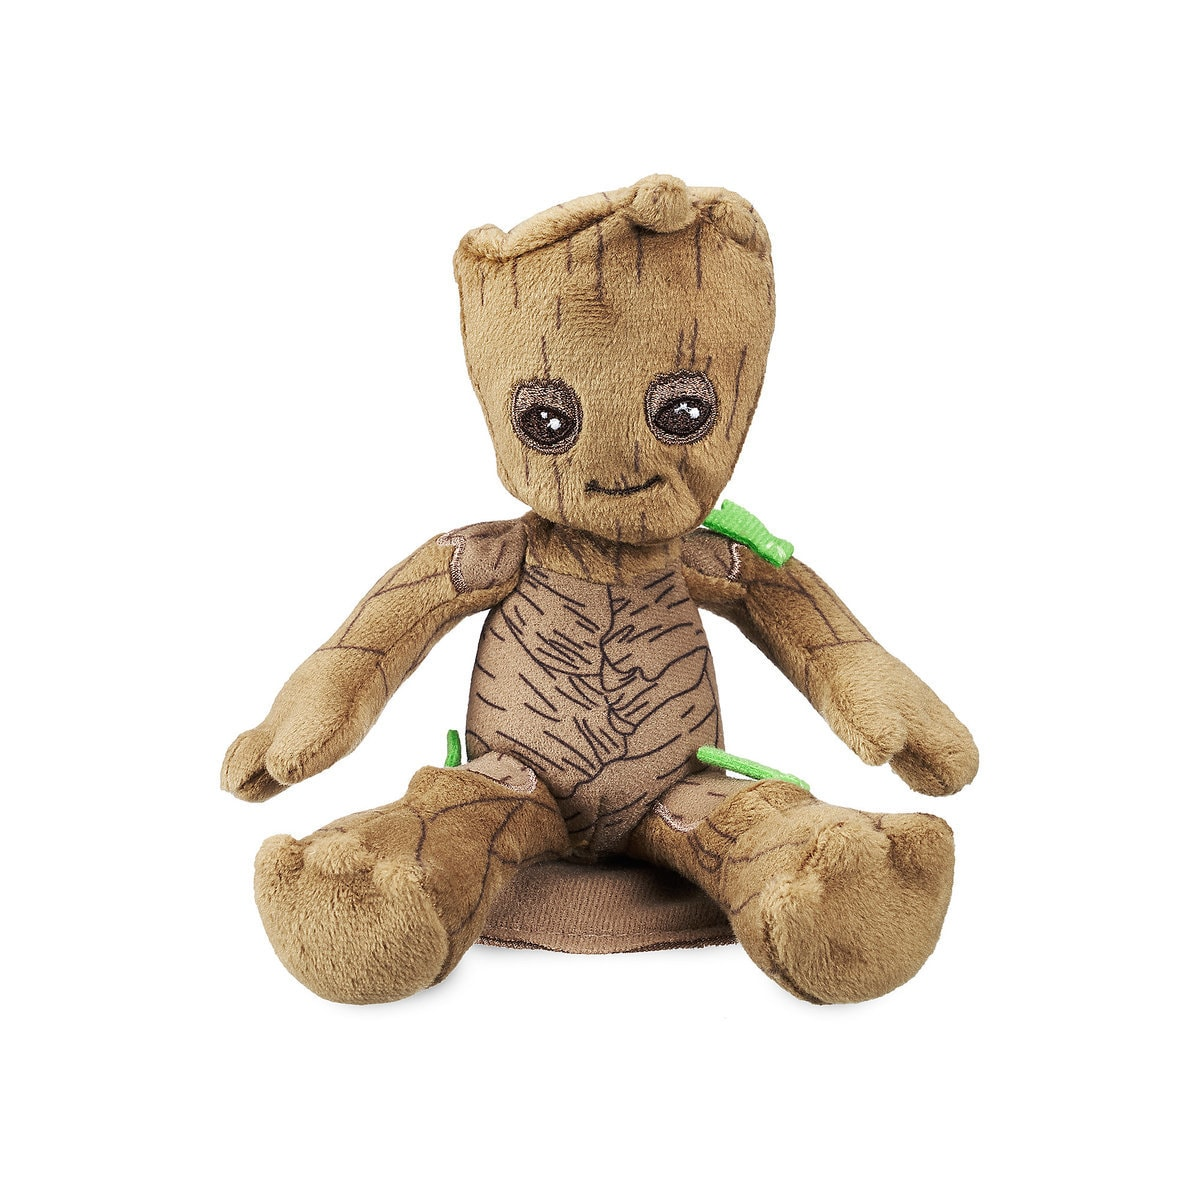 d8f8d5cfa2200 Product Image of Groot Mini Magnetic Shoulder Plush - Guardians of the  Galaxy Volume 2